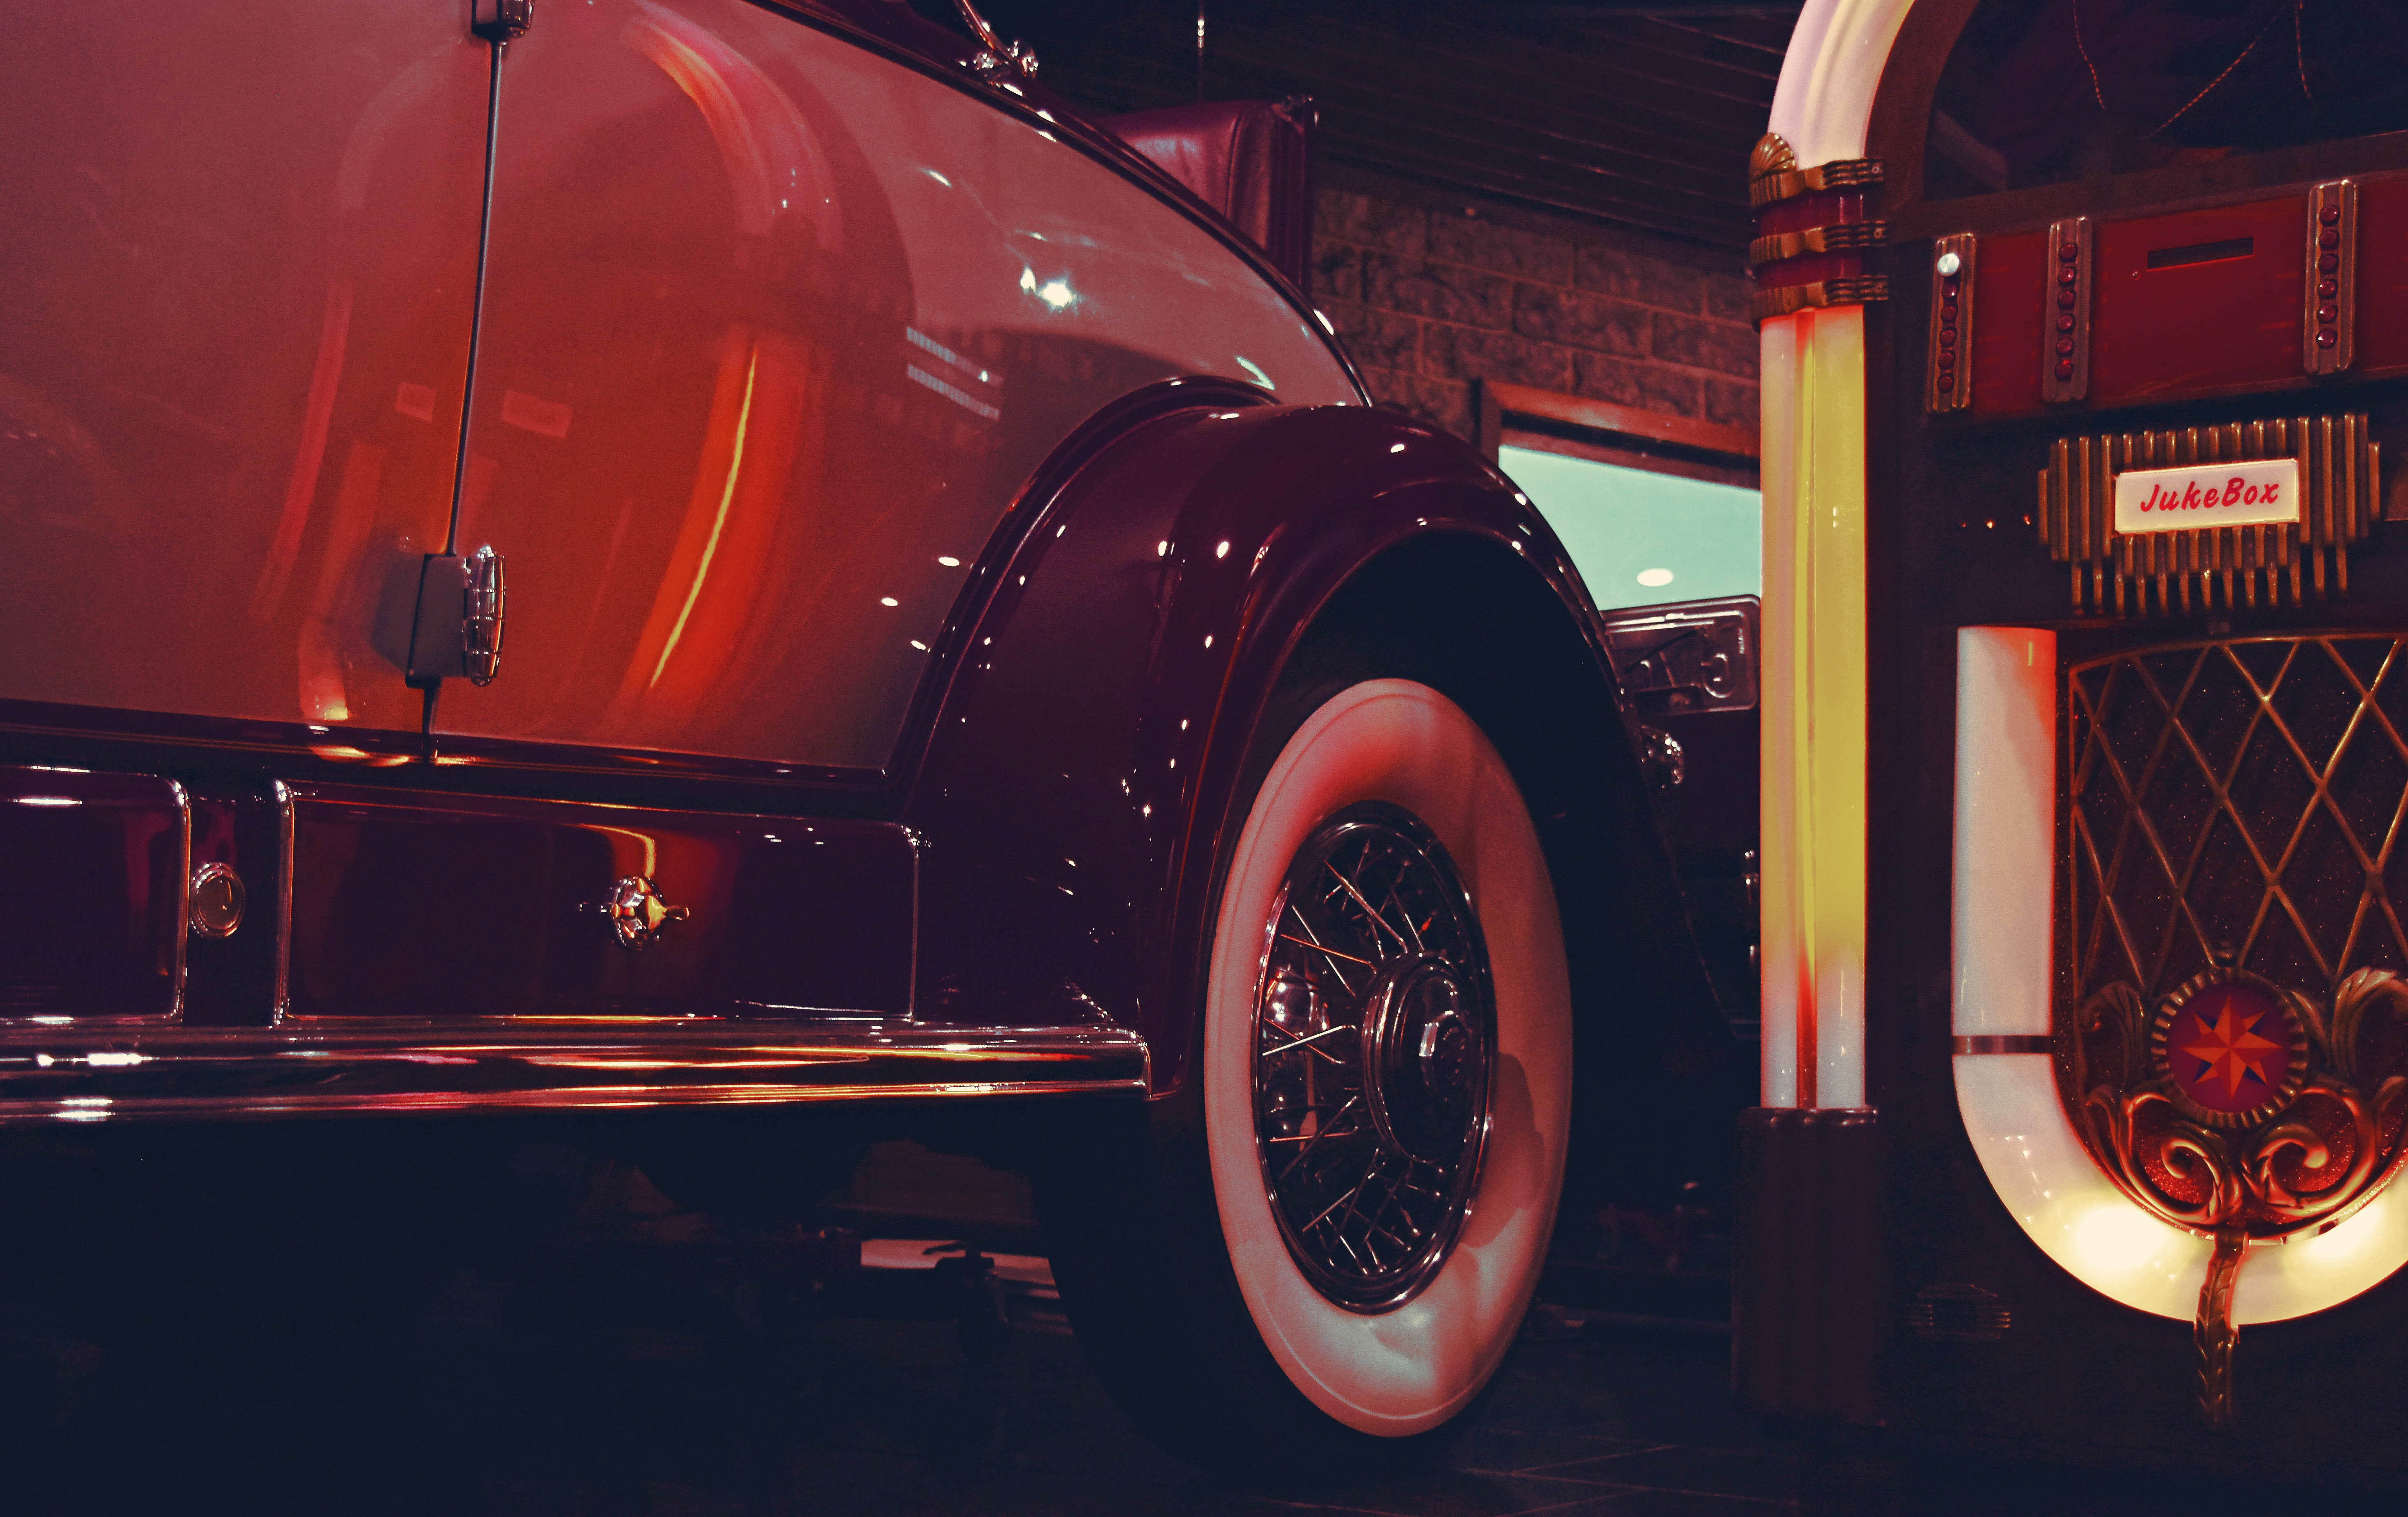 Lighted Jukebox Beside White and Brown Car, Auto, Luxury, Vintage, Vehicle, HQ Photo